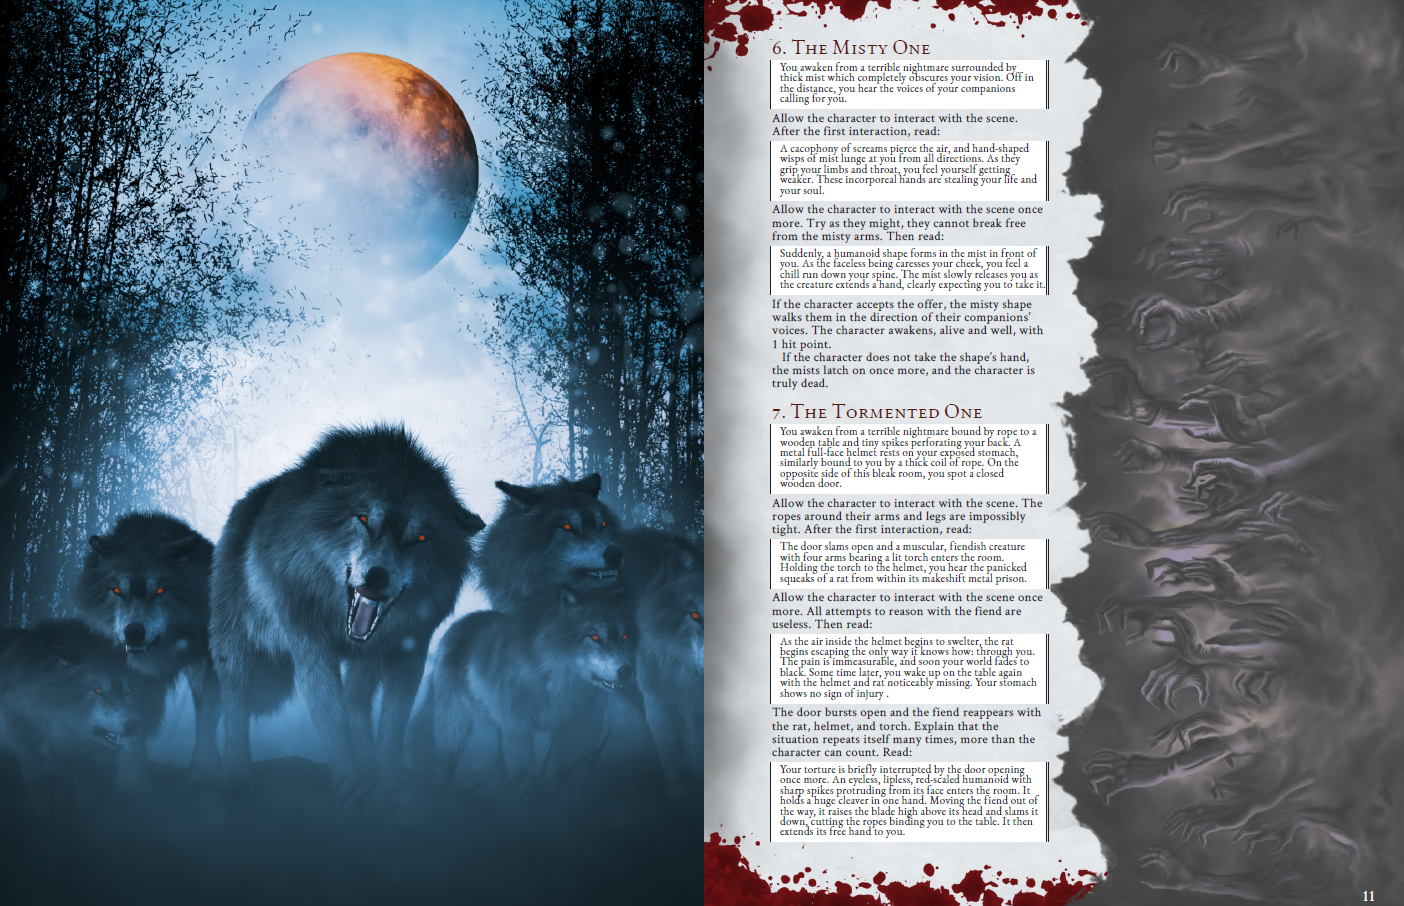 Preview of Encounters #6 and #7 with arts of aggressive wolves and misty hands.